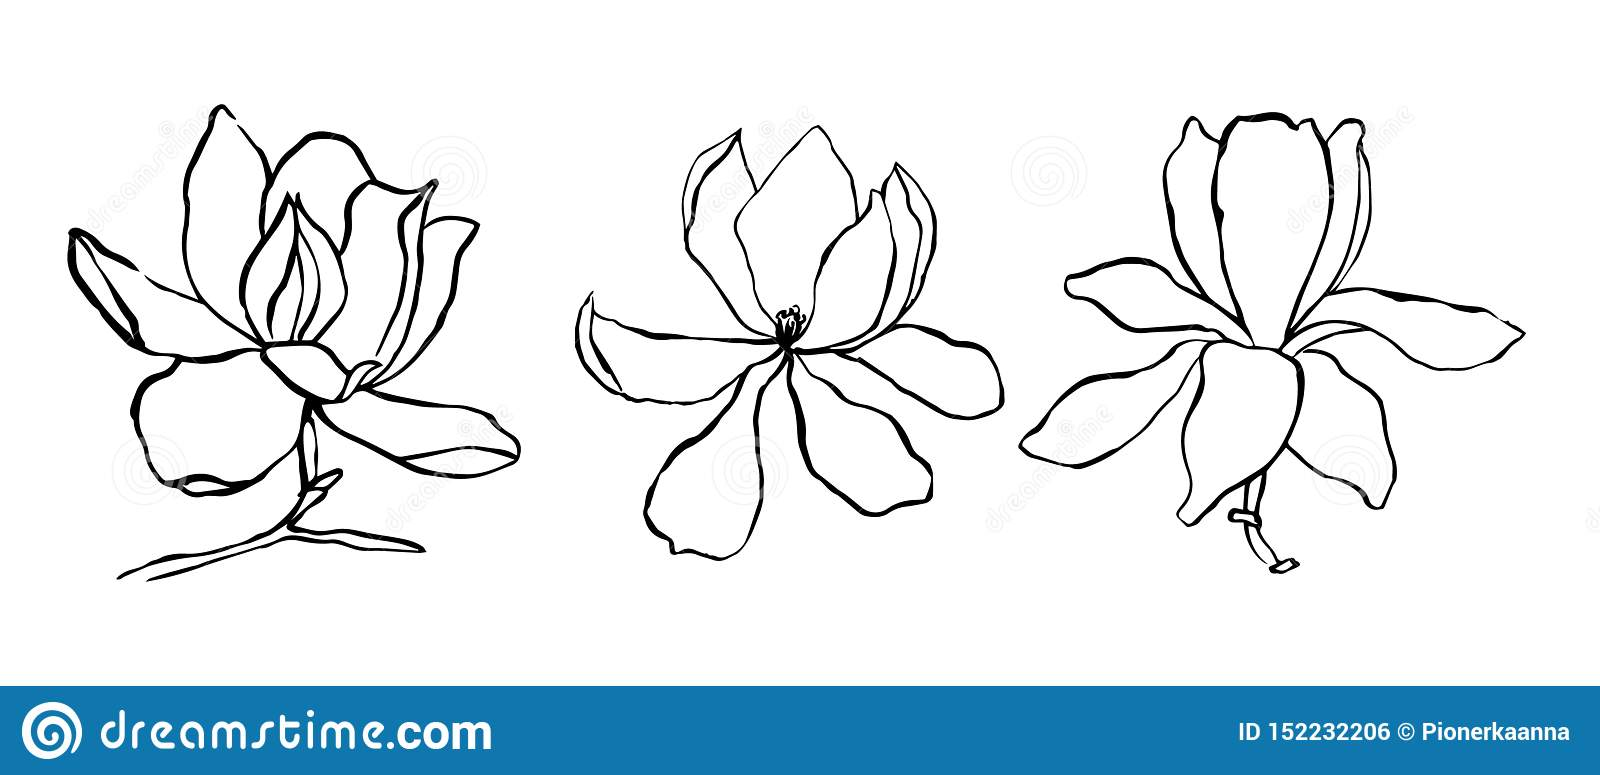 Sketch Floral Botany Collection Magnolia Flower Drawings